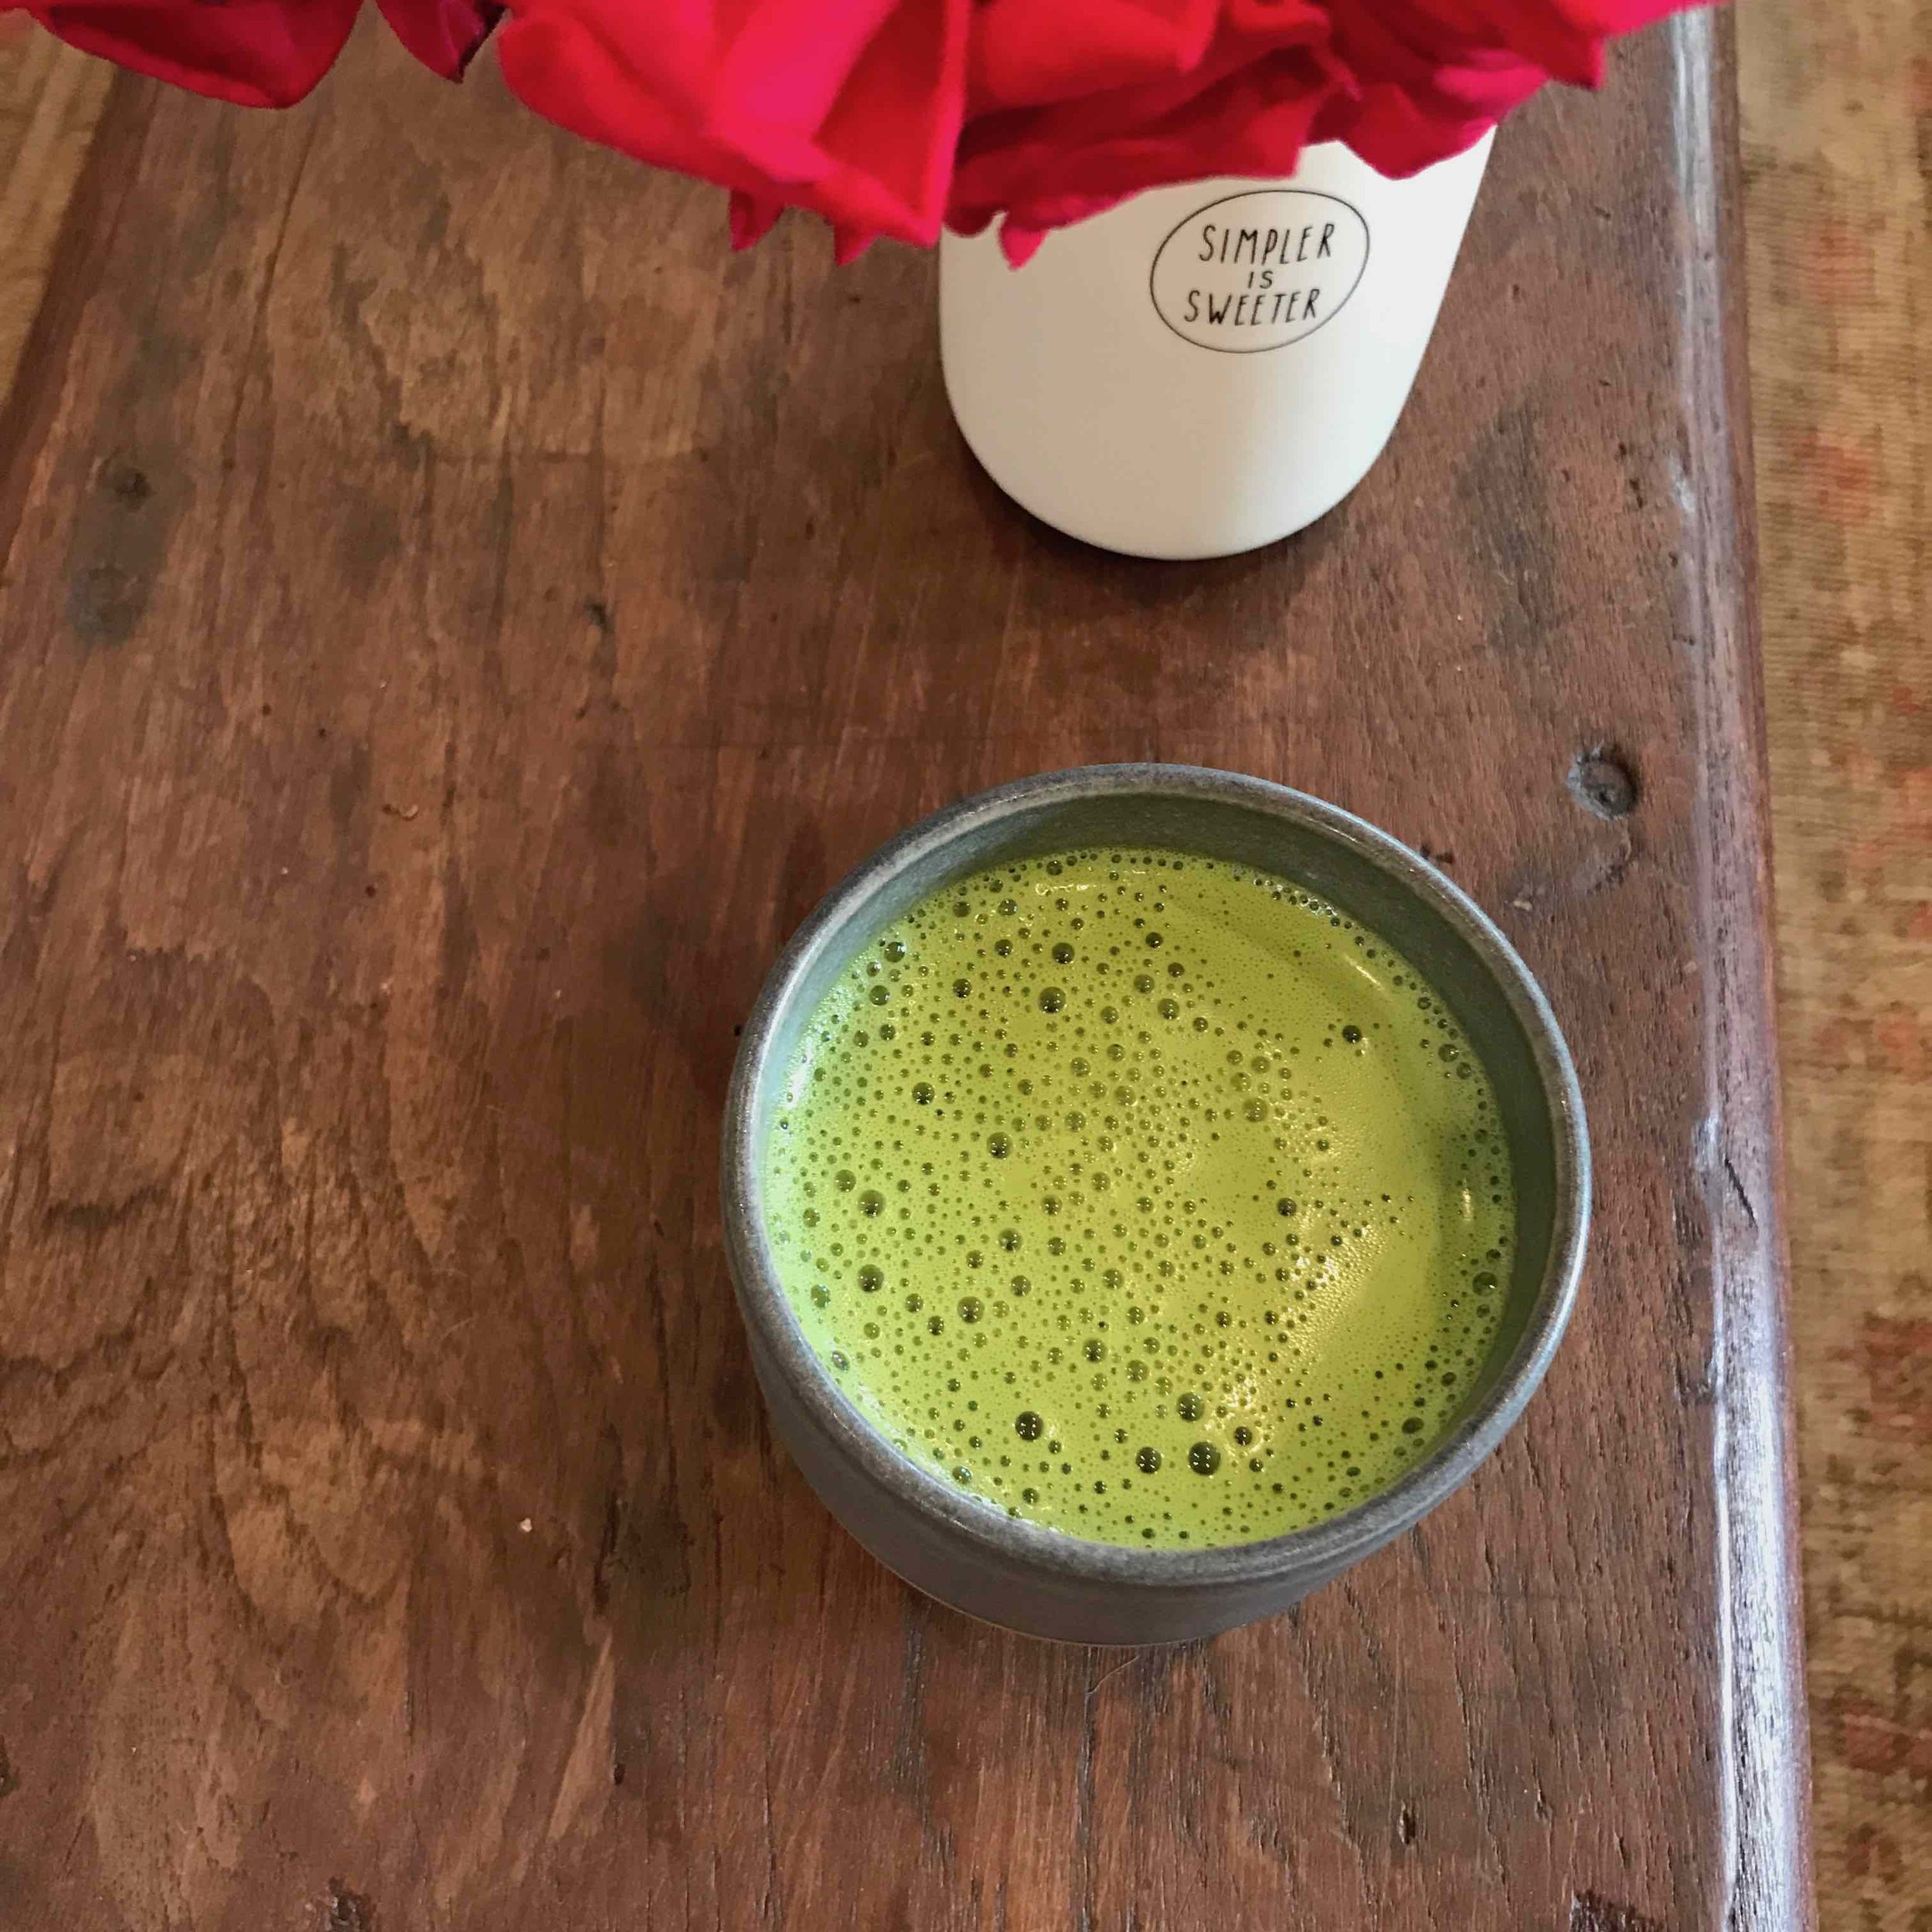 Delicious matcha tea latte gives me energy and a host of other benefits